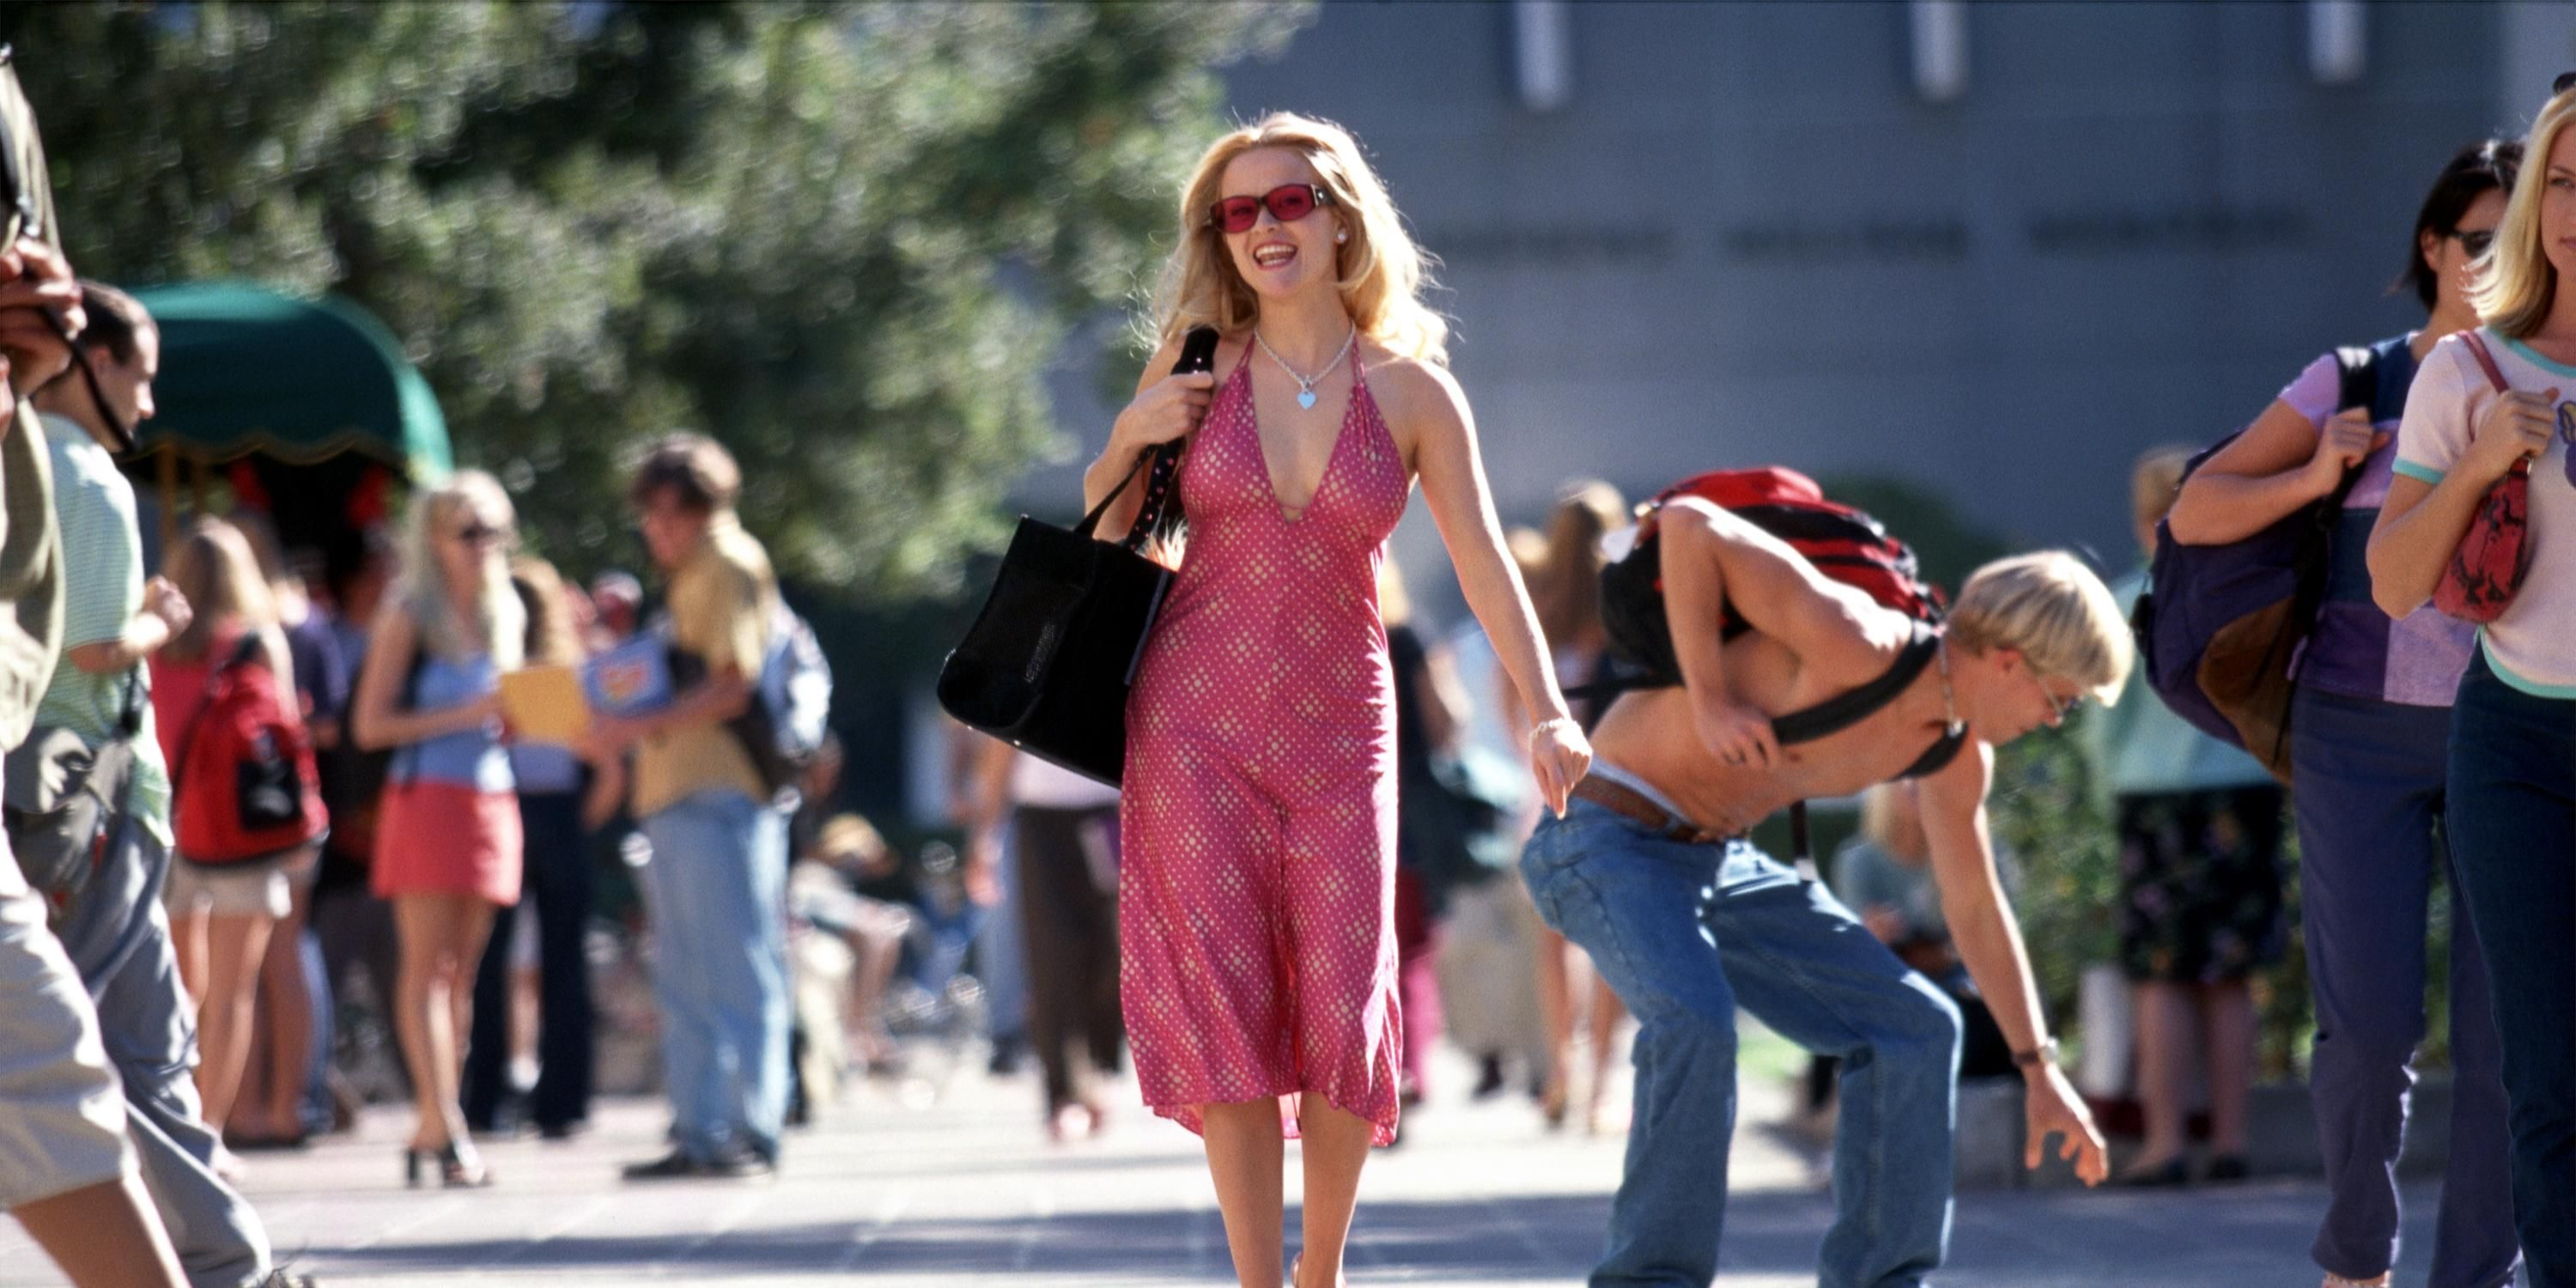 MGM 2001 Movie Previews- Reese Witherspoon in Legally Blonde